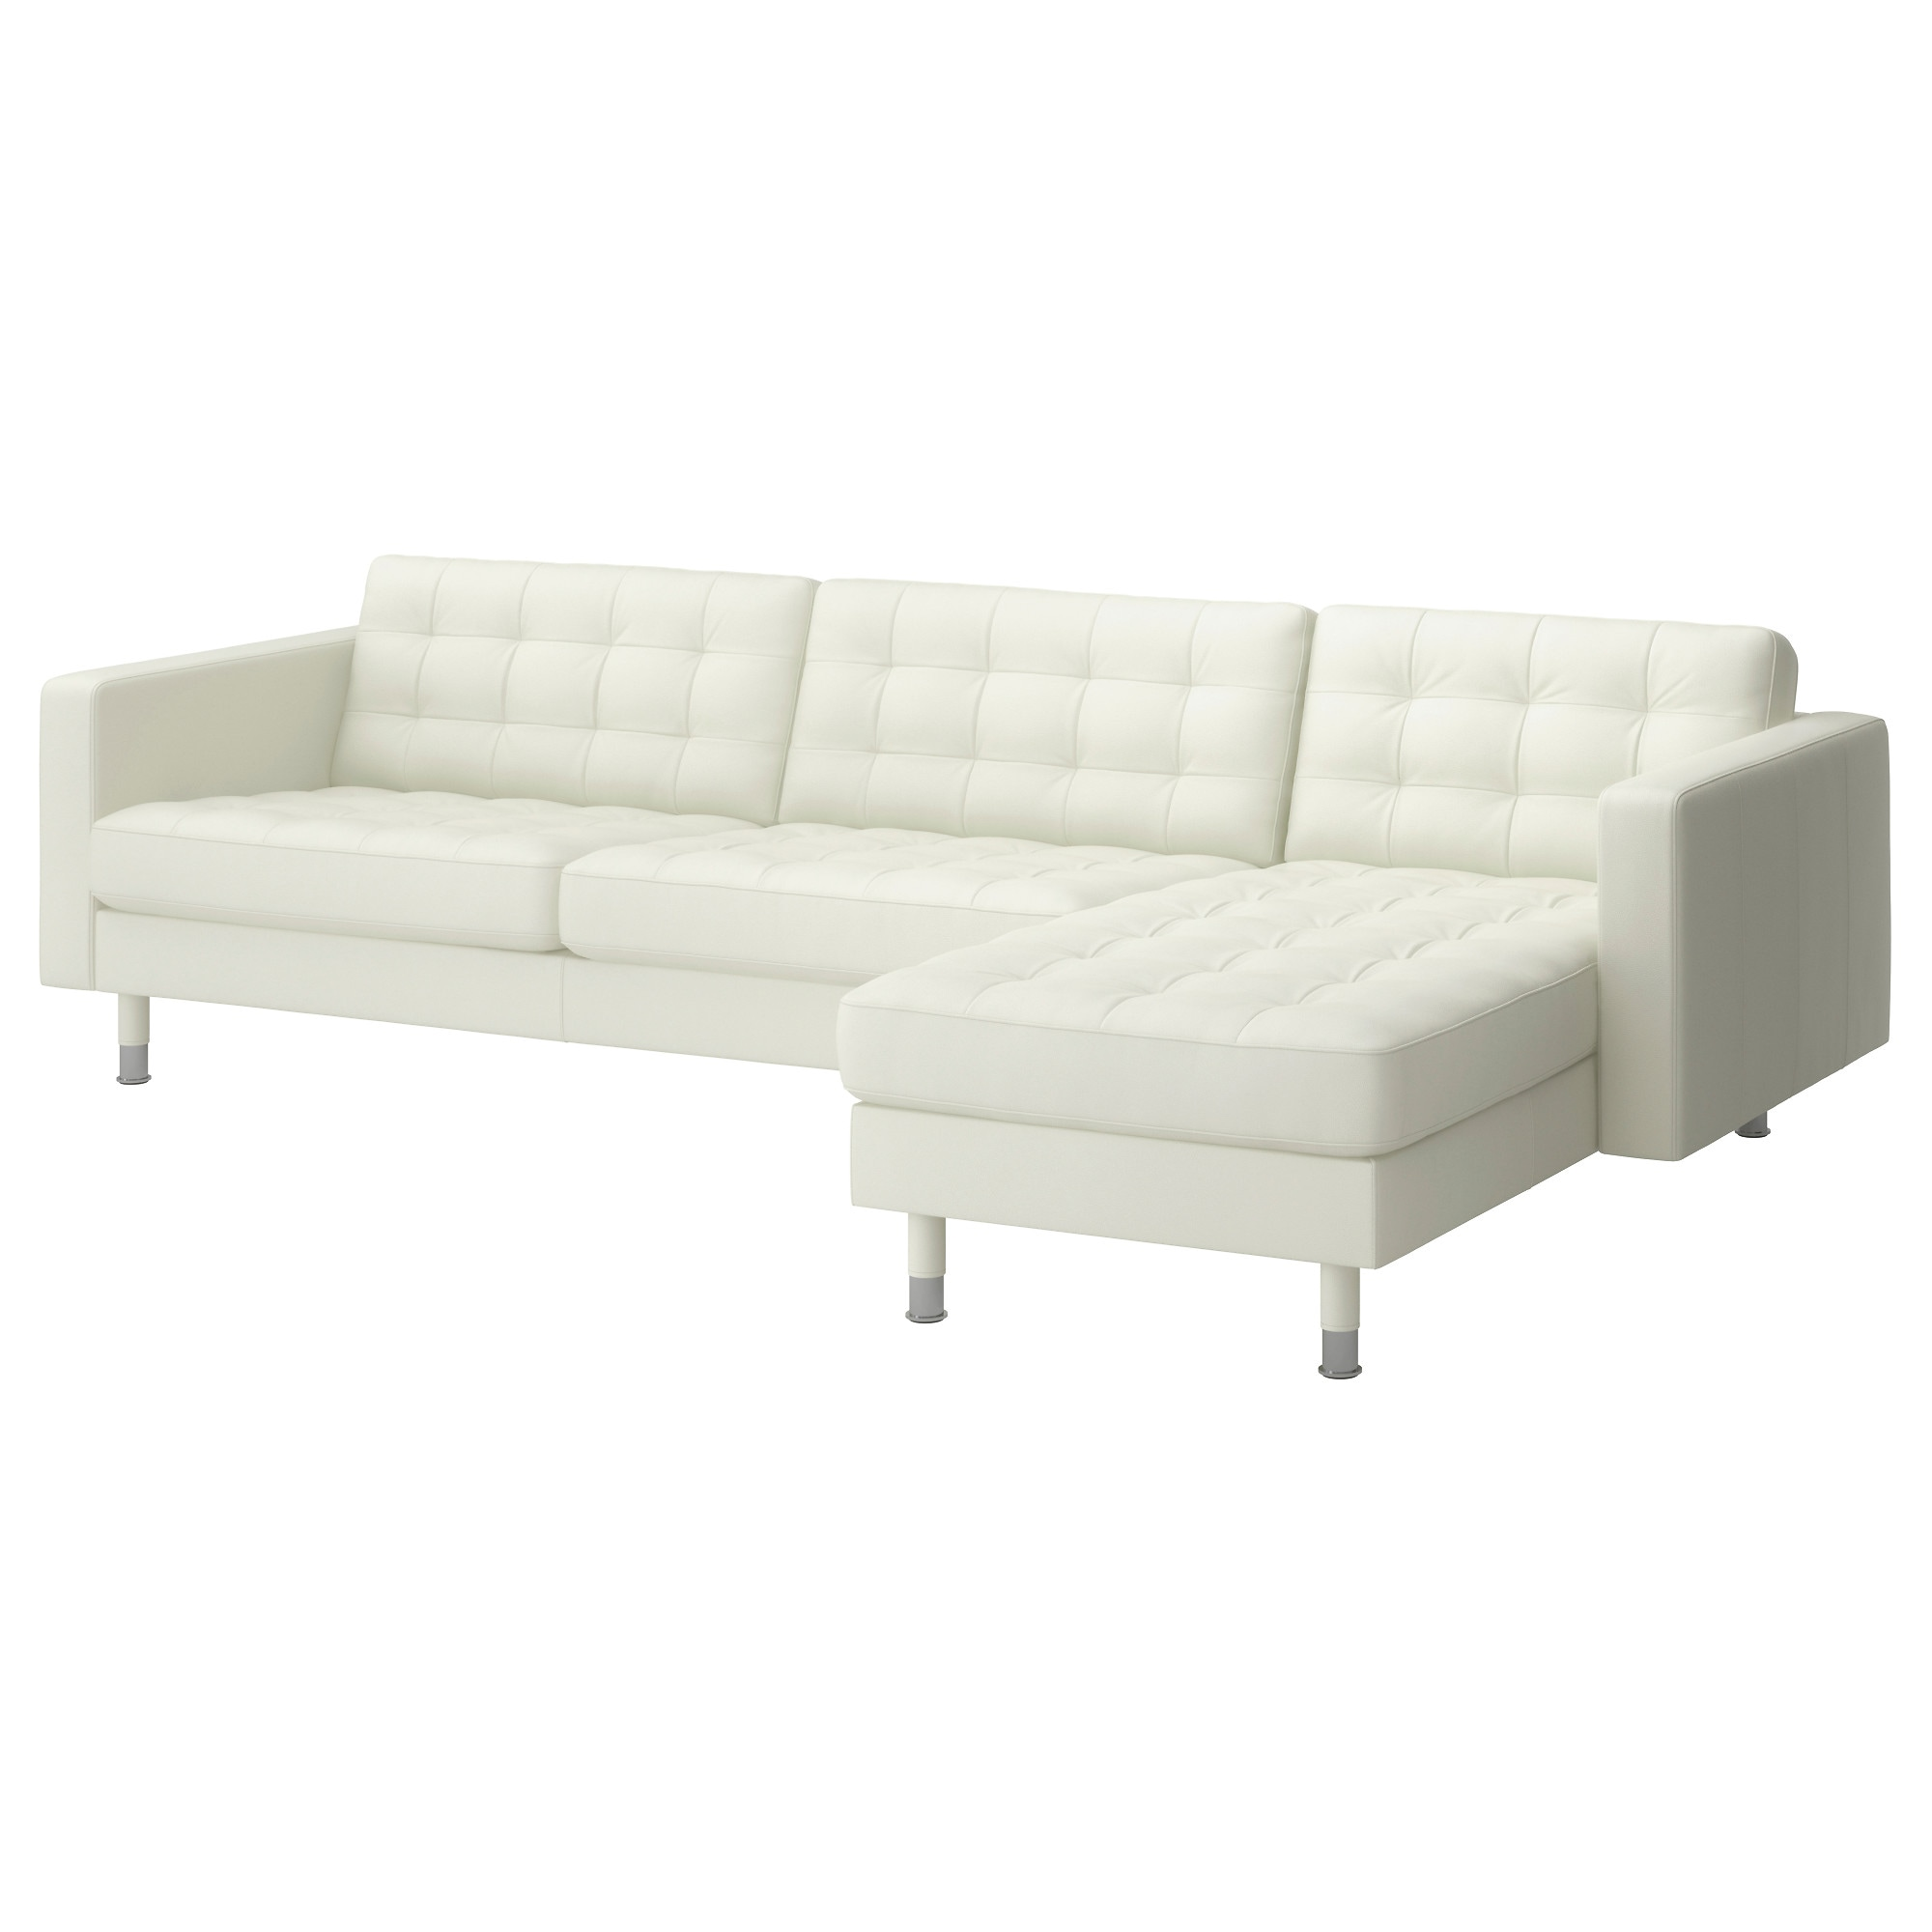 Attractive LANDSKRONA Sectional, 4 Seat   Grann/Bomstad White, Metal   IKEA